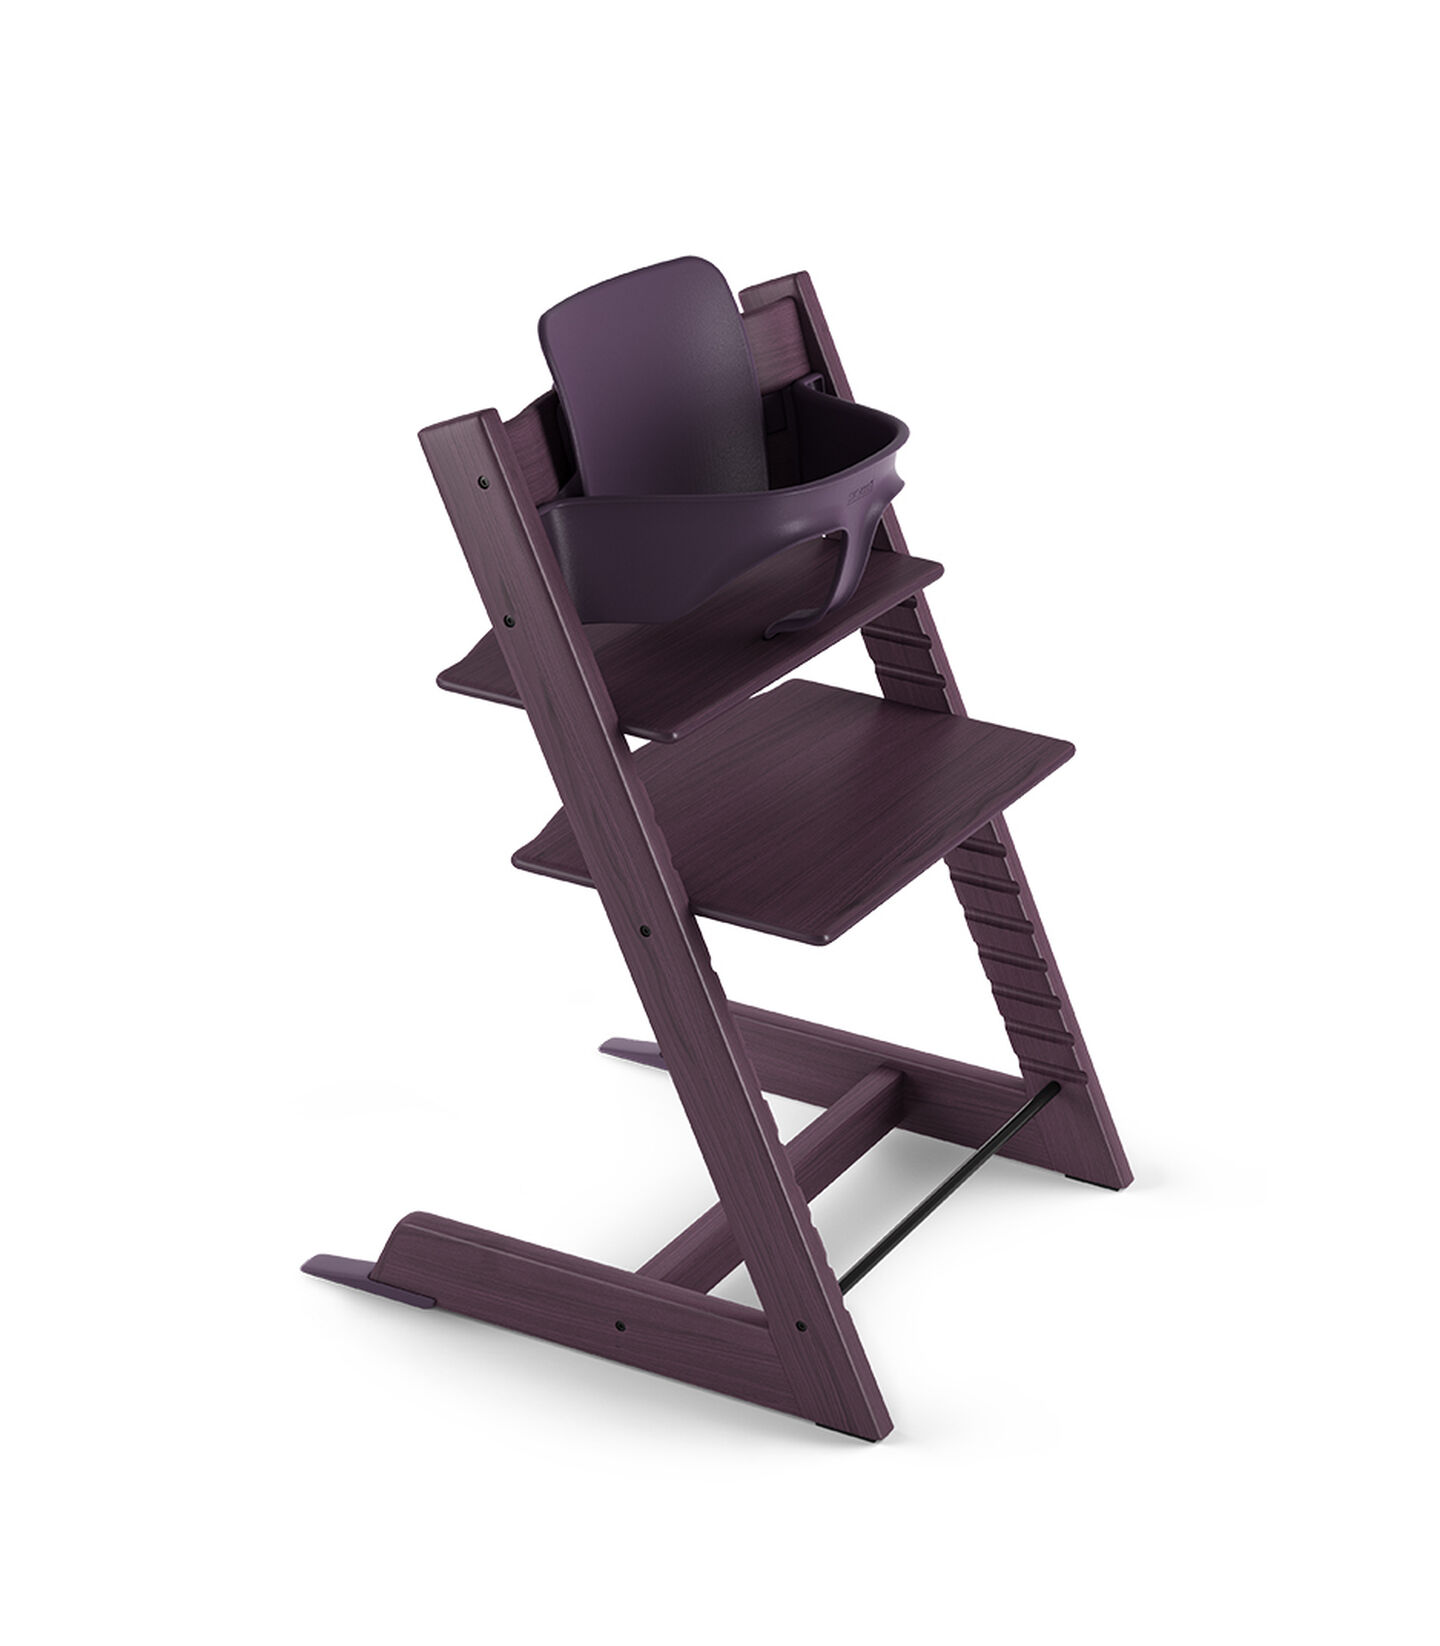 Tripp Trapp® Chair Plum Purple with Baby Set.